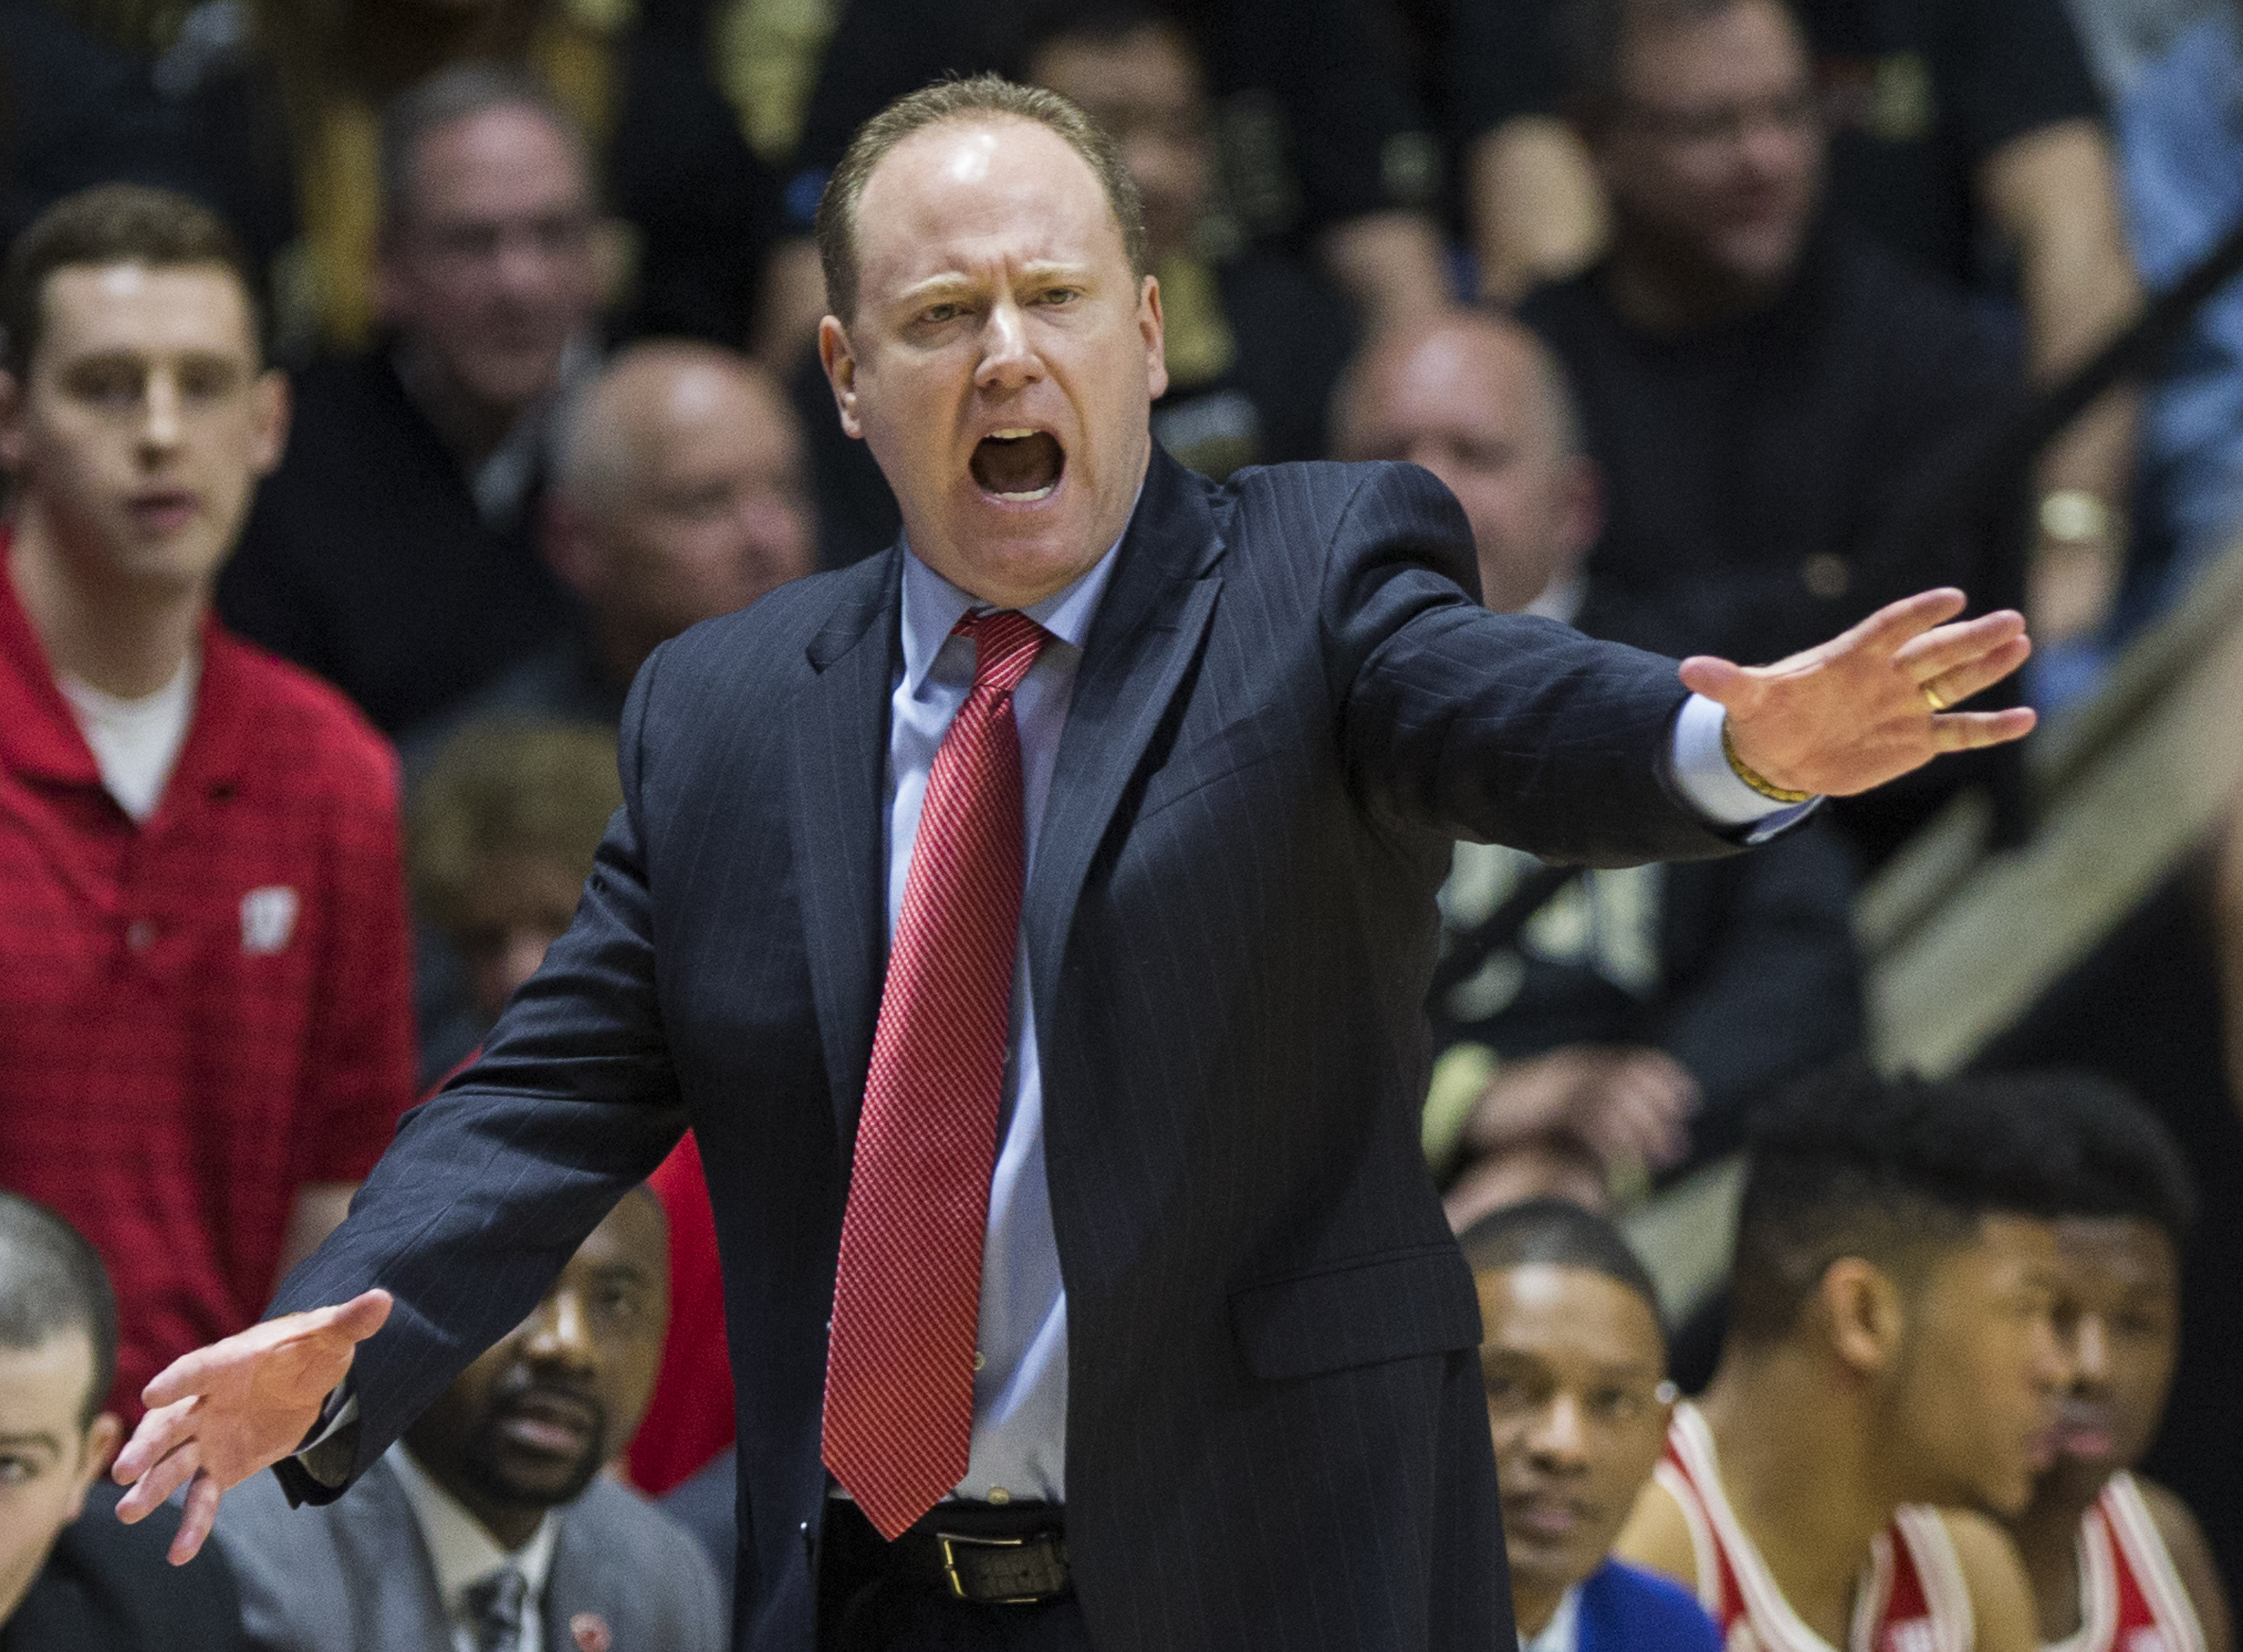 Wisconsin interim head coach Greg Gard yells to players during the second half of Purdue's 91-80 win in an NCAA college basketball game Sunday, March 6, 2016, in West Lafayette, Ind. (AP Photo/Robert Franklin)